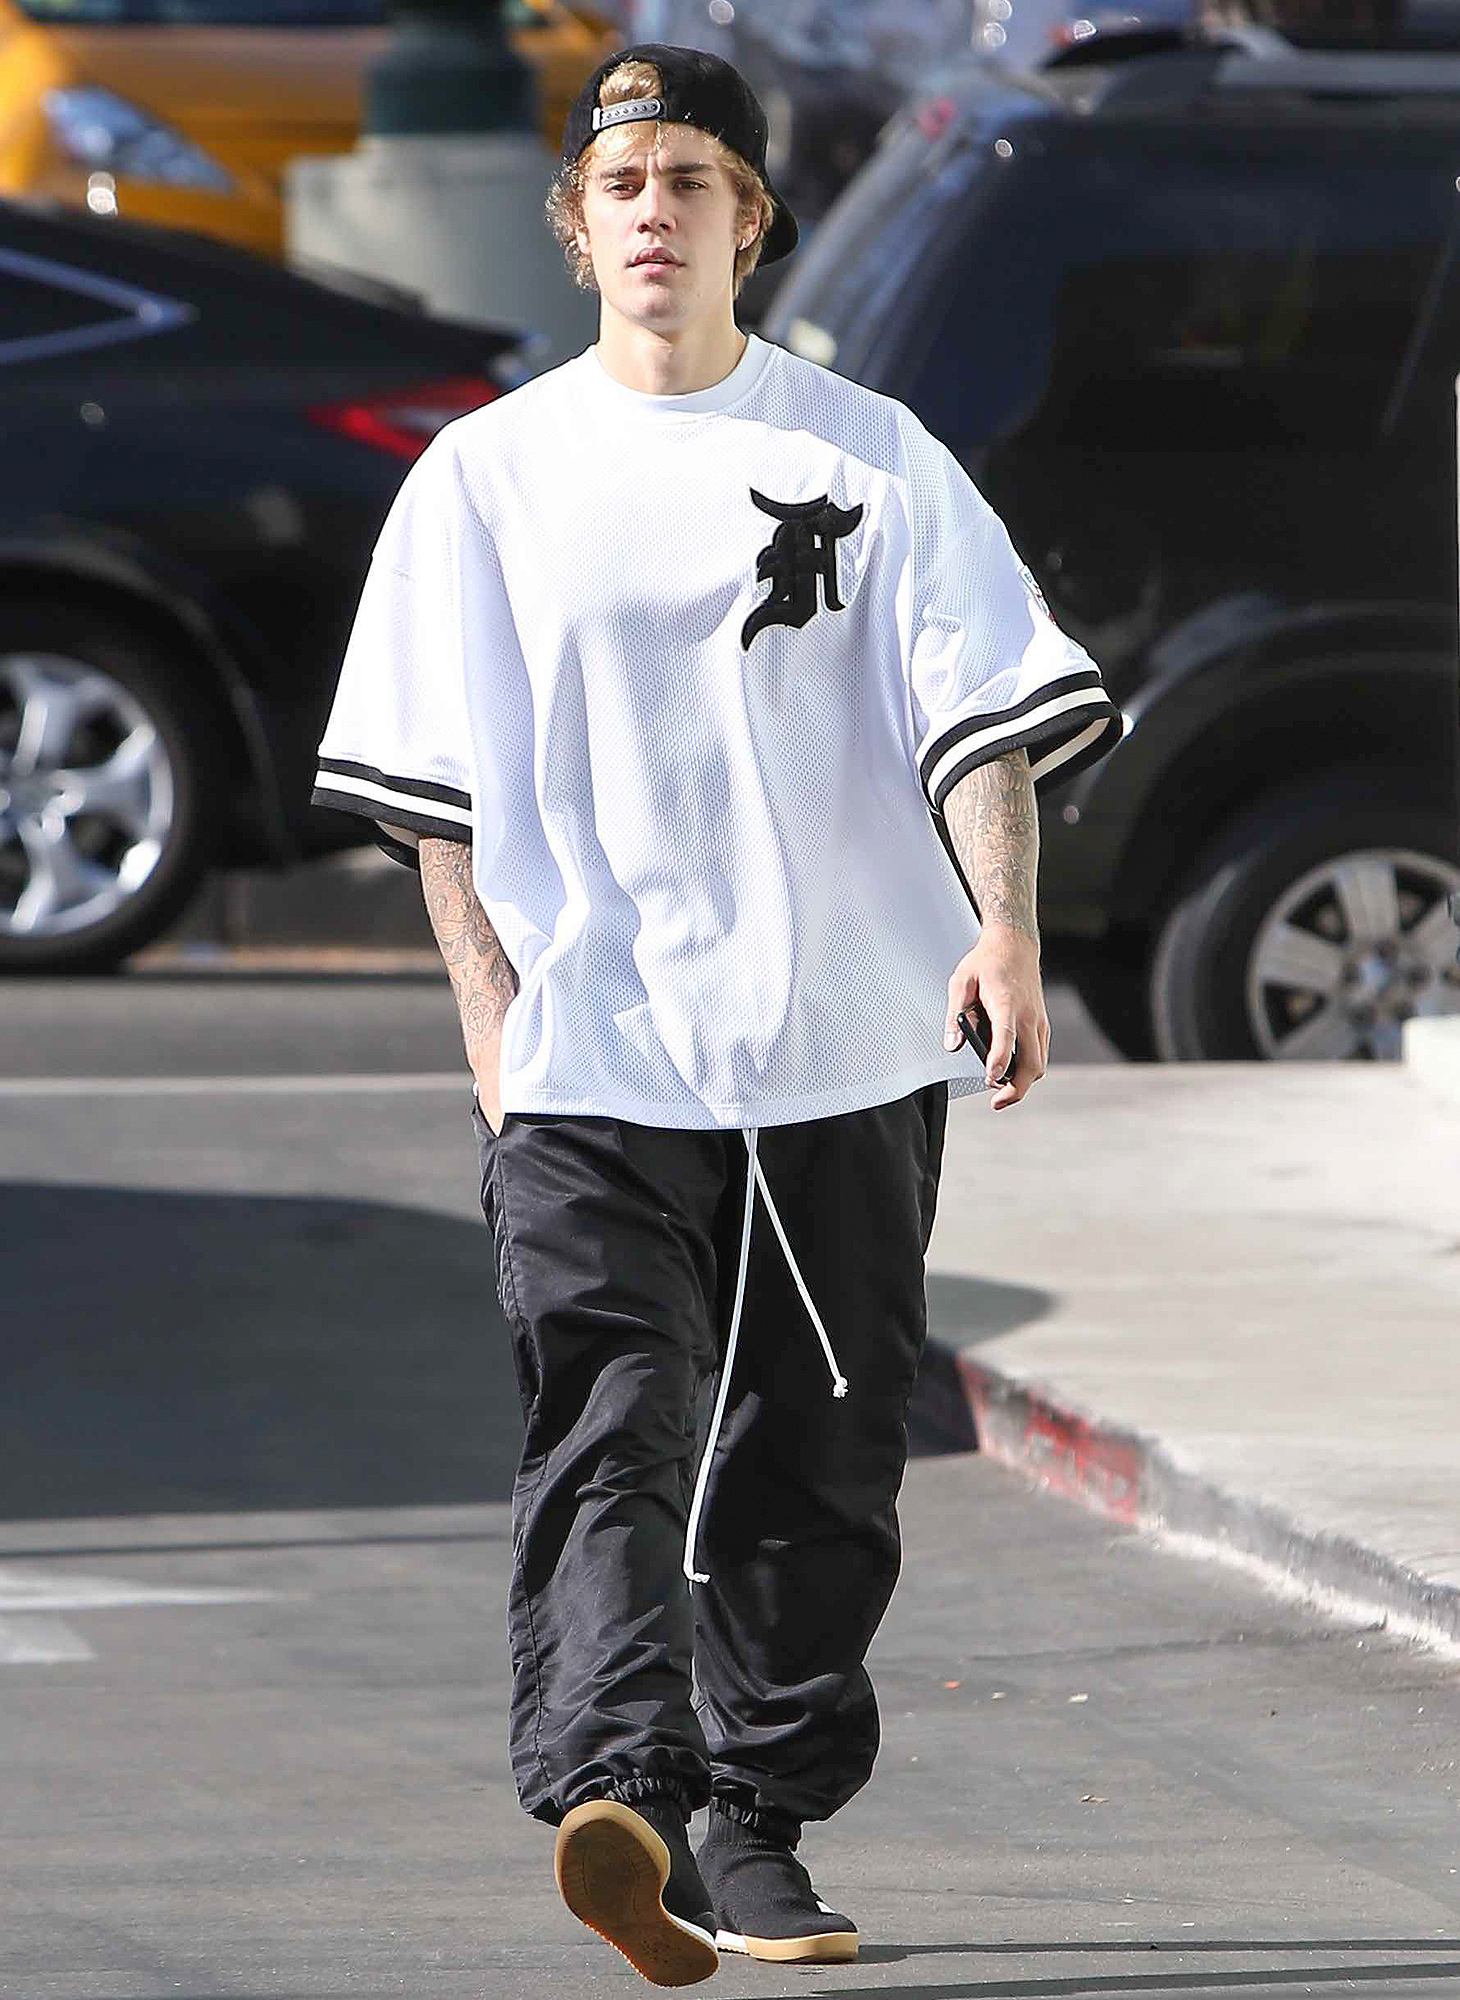 Justin Bieber looks down cast about Head of security getting arrested for DIU CAR ACCIDENT